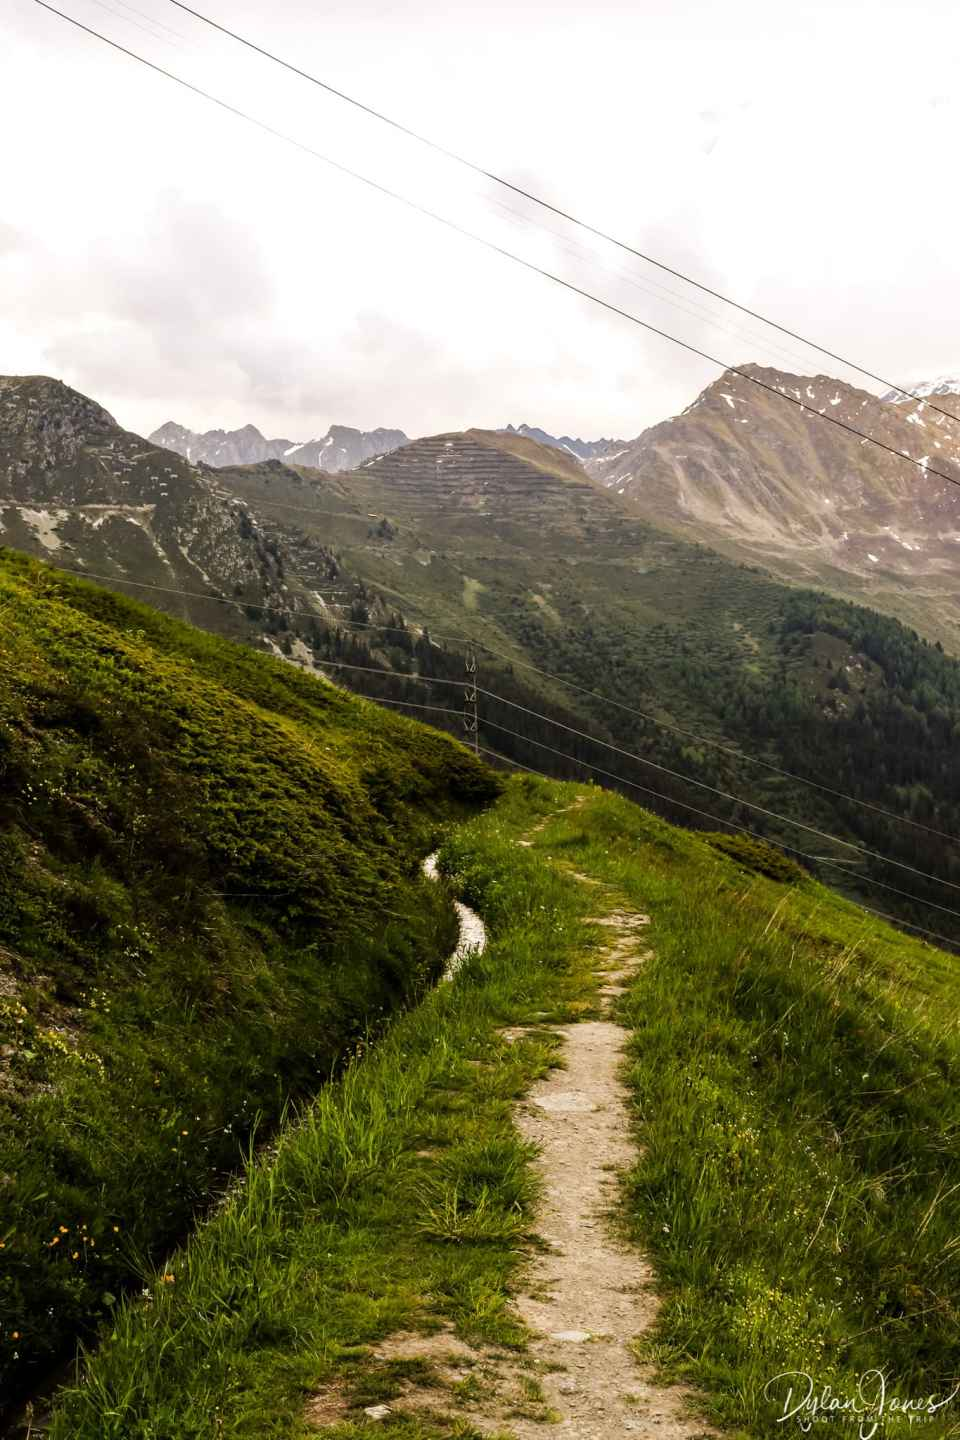 The hiking trail alongside the Bisse du Levron